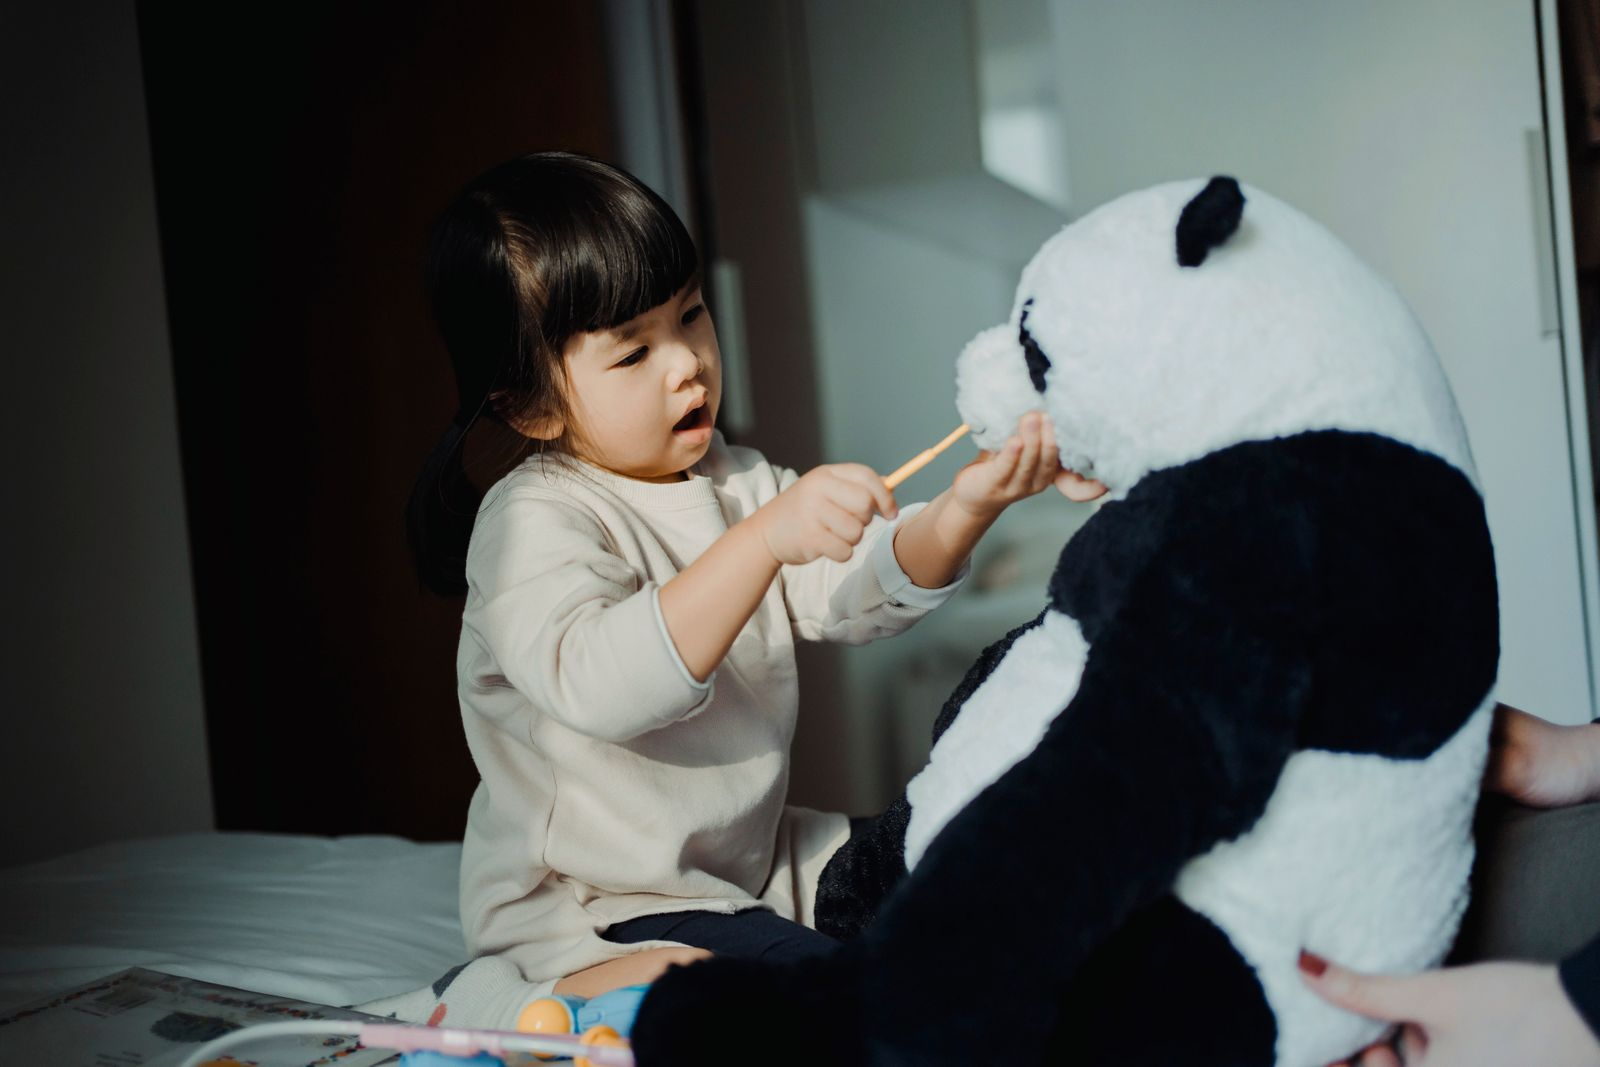 Adorable little Asian girl playing with her soft panda toy, brushing the teeth of the soft panda toy with a toothbrush, playing a dentist game at home